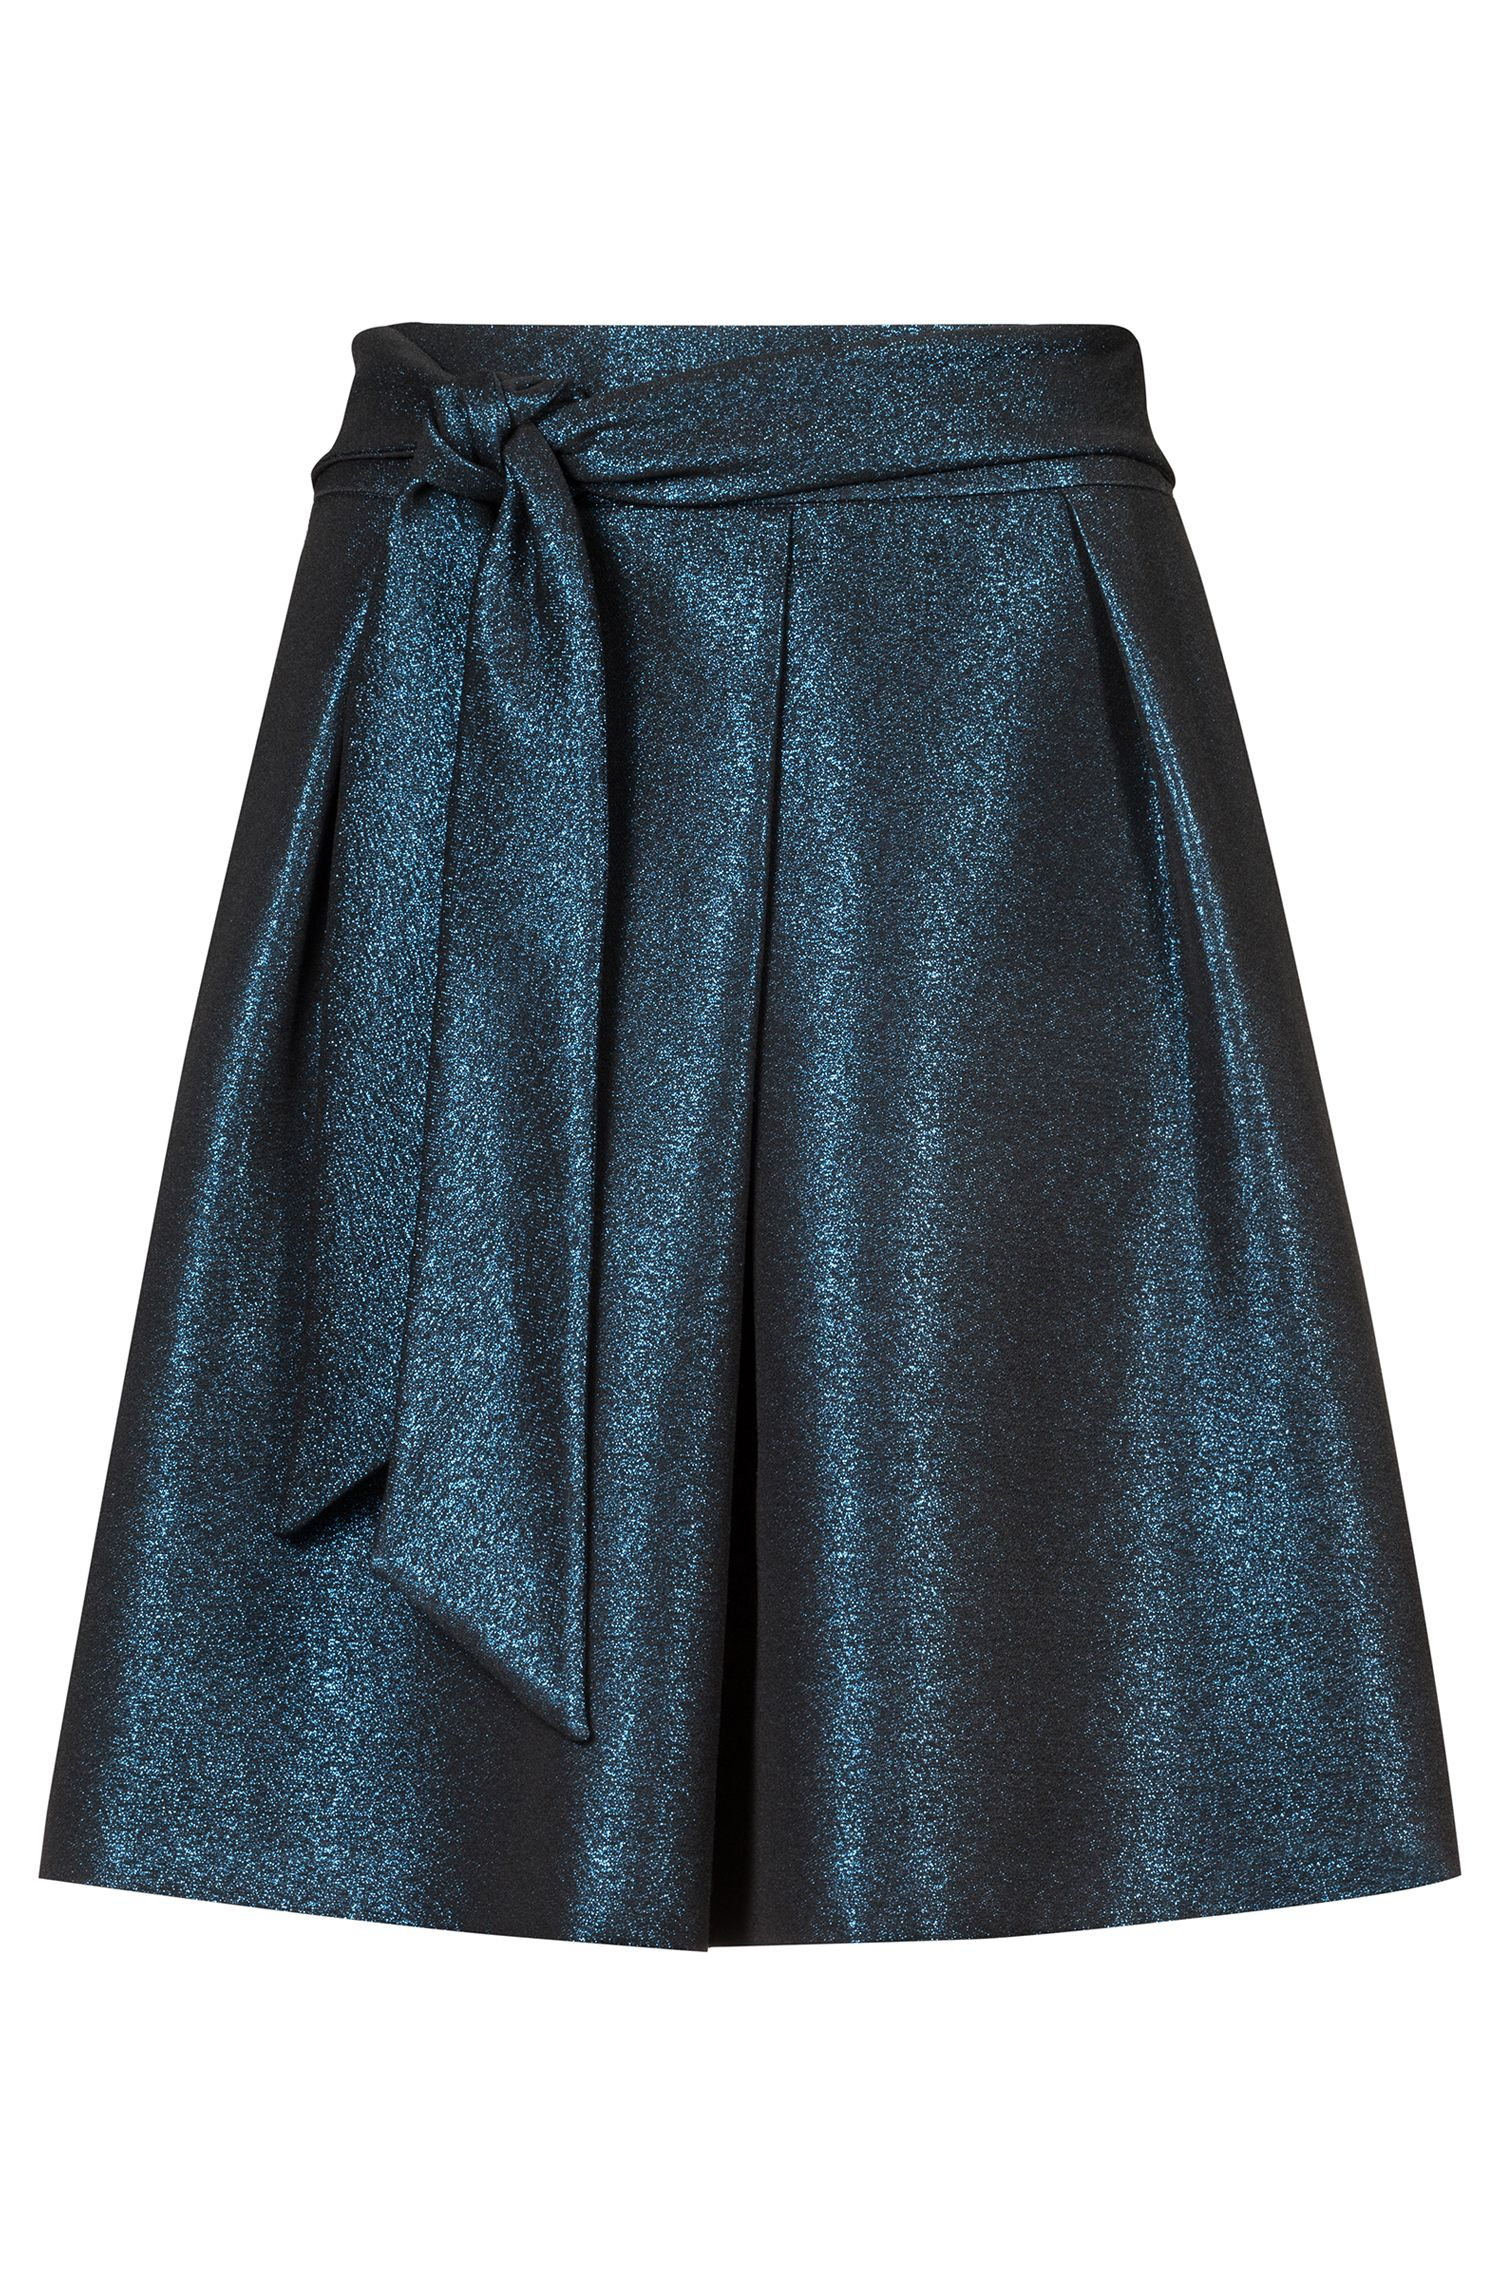 High-rise A-line skirt in sparkly fabric, Patterned